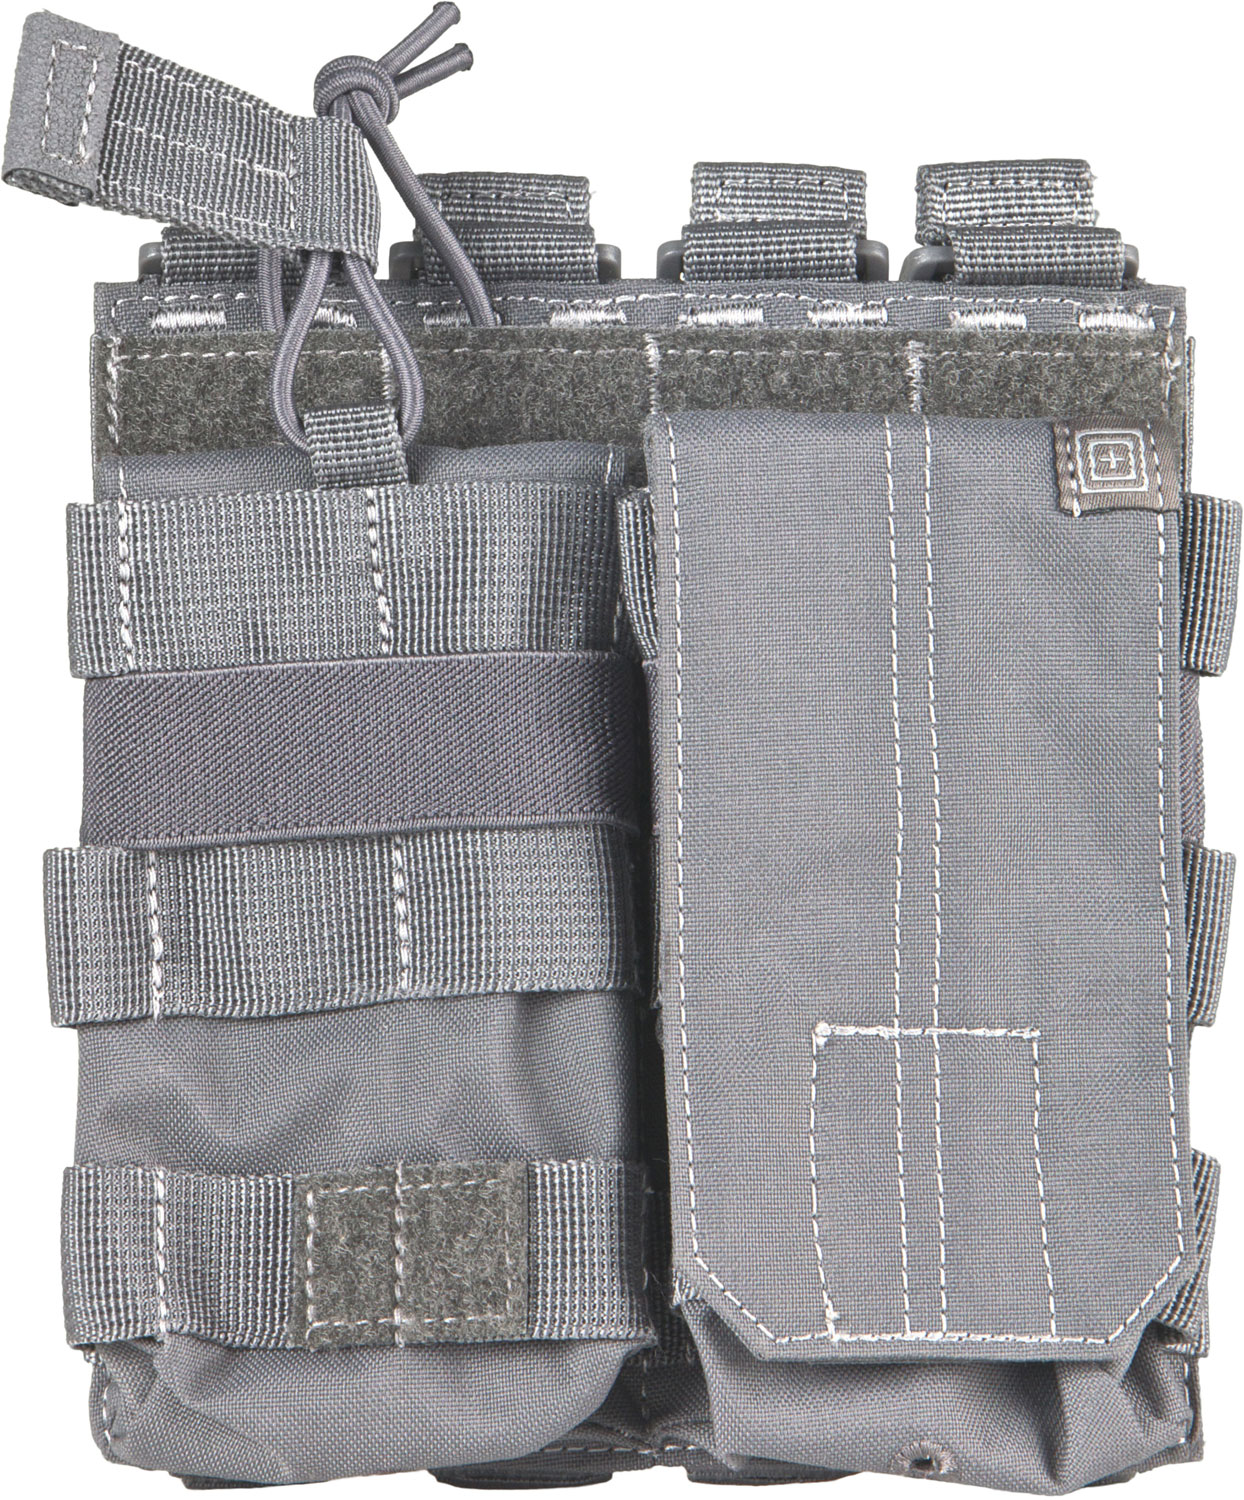 Buy Pouches at KnifeCenter